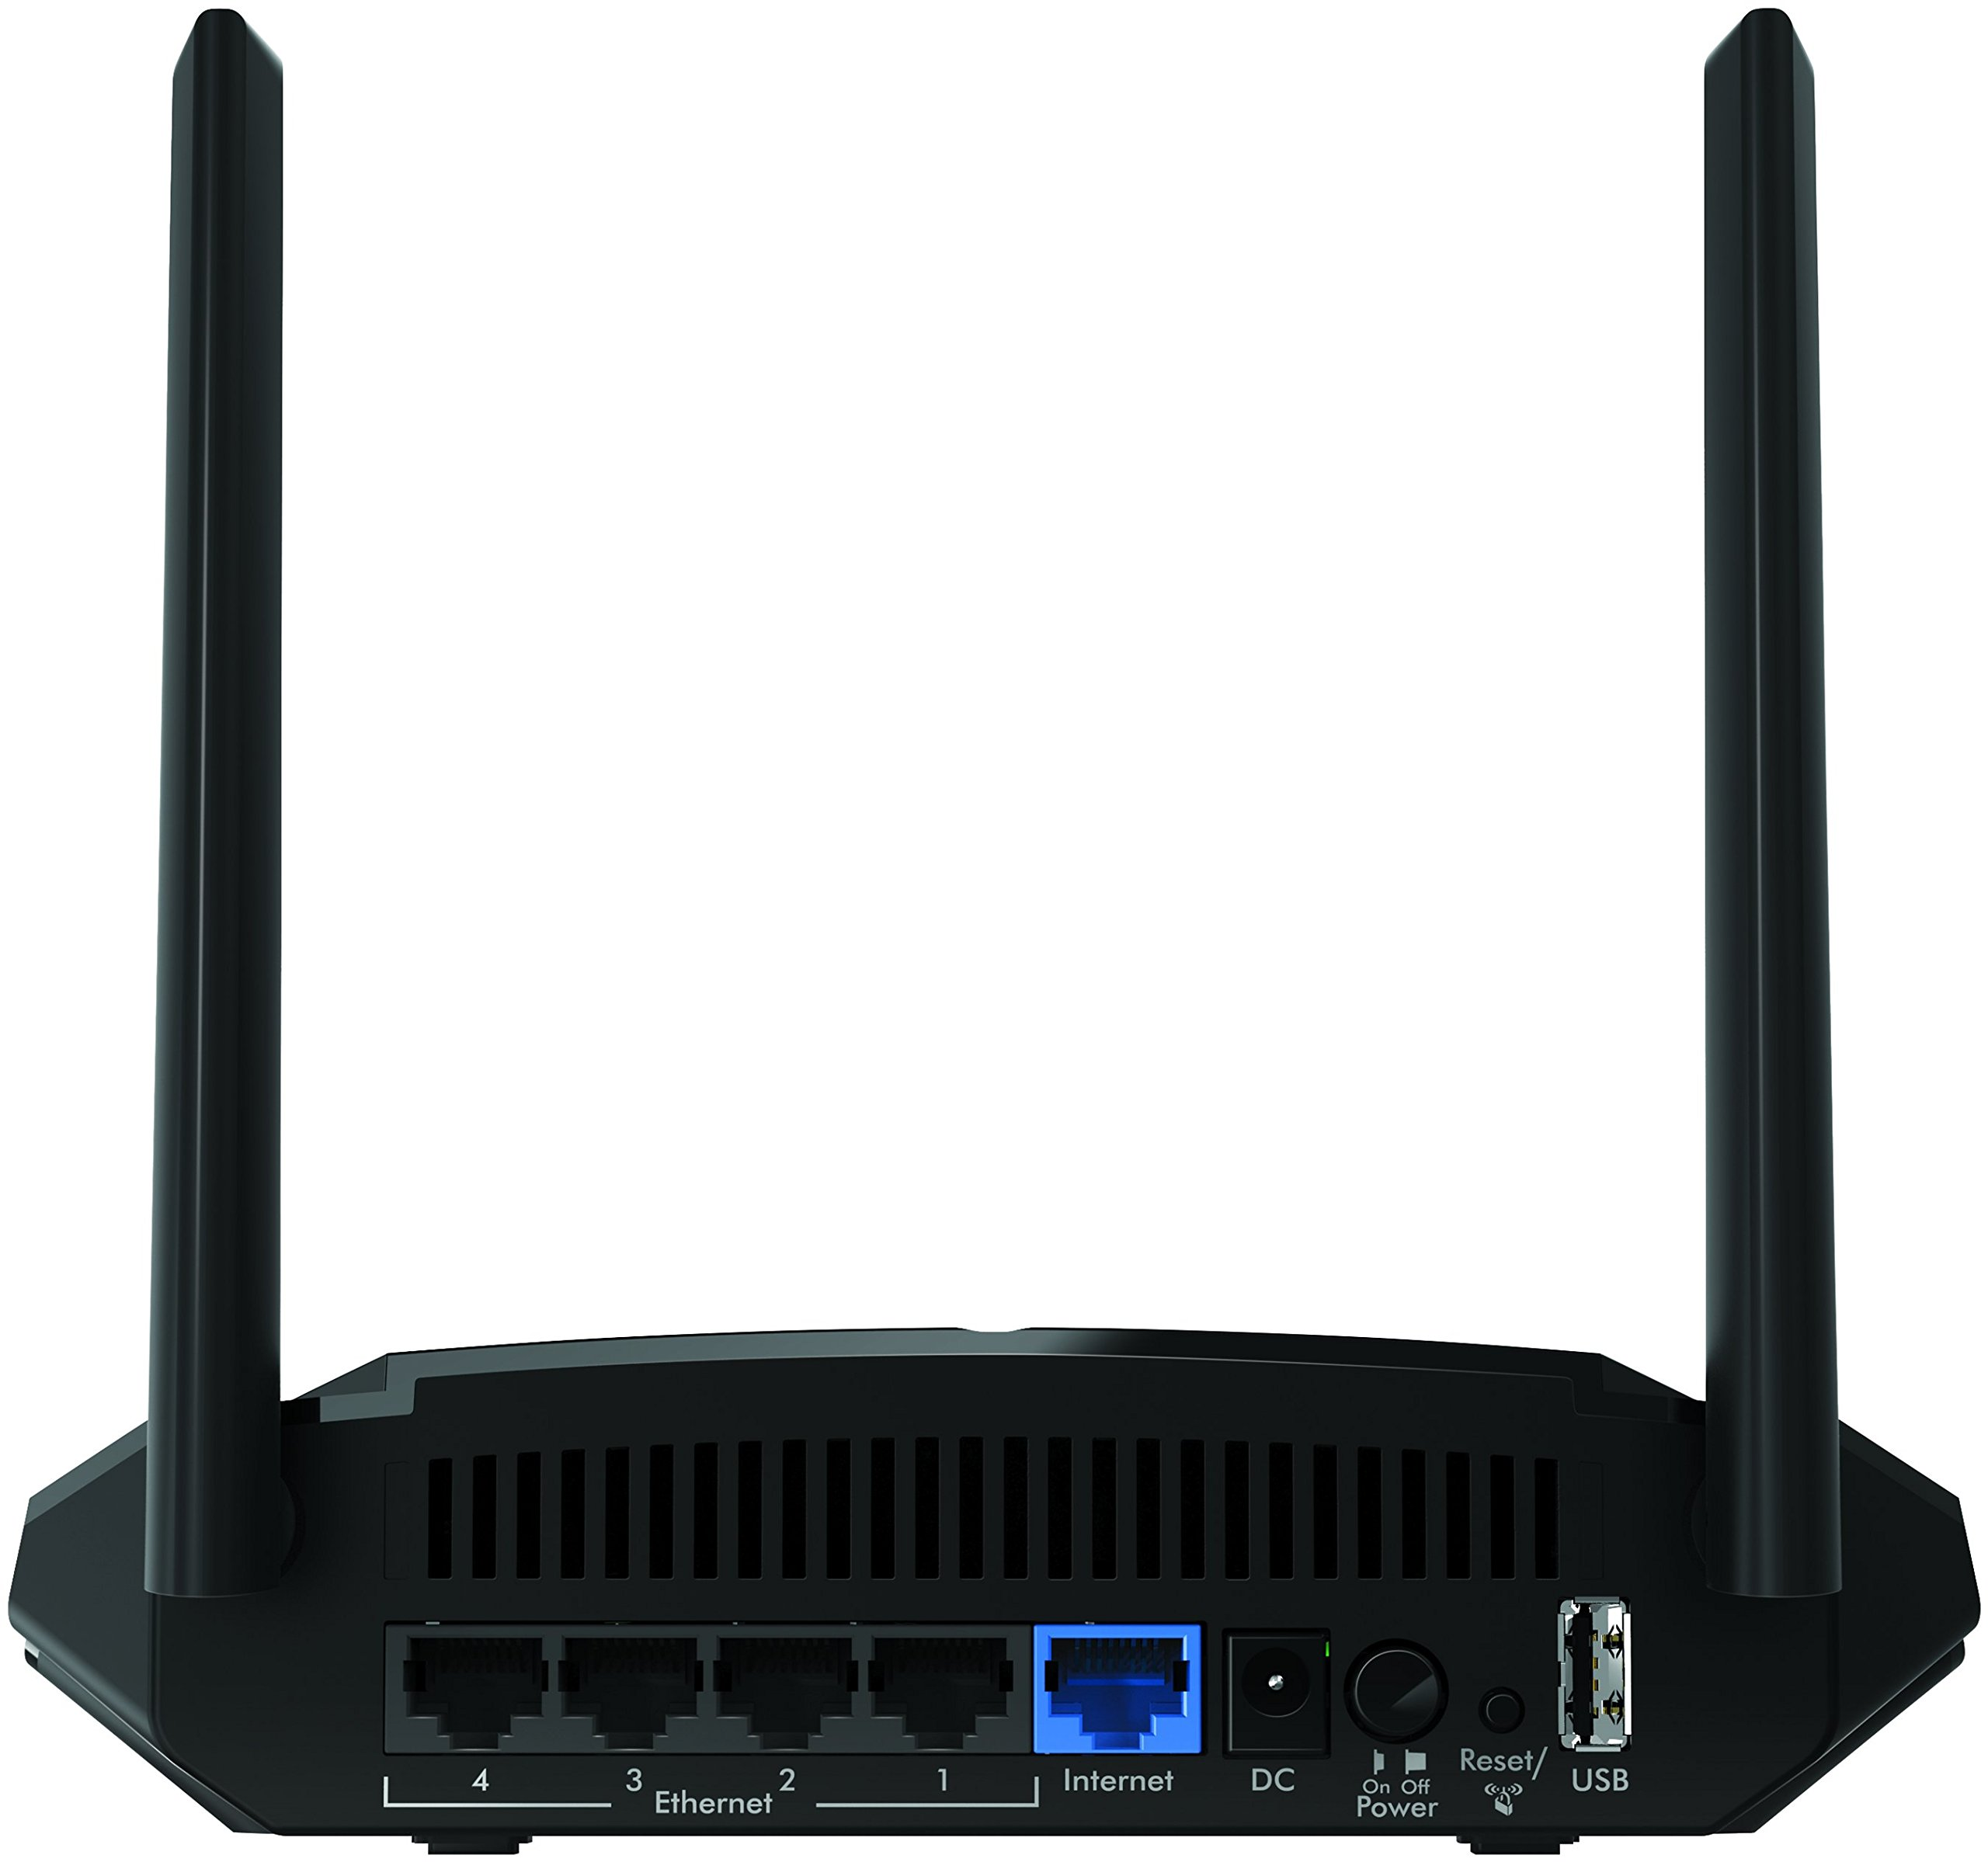 Netgear wifi router (r6120) - ac1200 dual band wireless speed (up to 1200 mbps) | up to 1200 sq ft coverage & 20 devices… 5 fast wifi performance: get up to 1200 sq ft wireless coverage with ac1200 speed (dual band up to 300 + 900 mbps). Recommended for up to 20 devices: reliably stream videos, play games, surf the internet, and connect smart home devices. Wired ethernet ports: plug in computers, game consoles, streaming players, and other nearby wired devices with 4 x 10/100 fast ethernet ports.